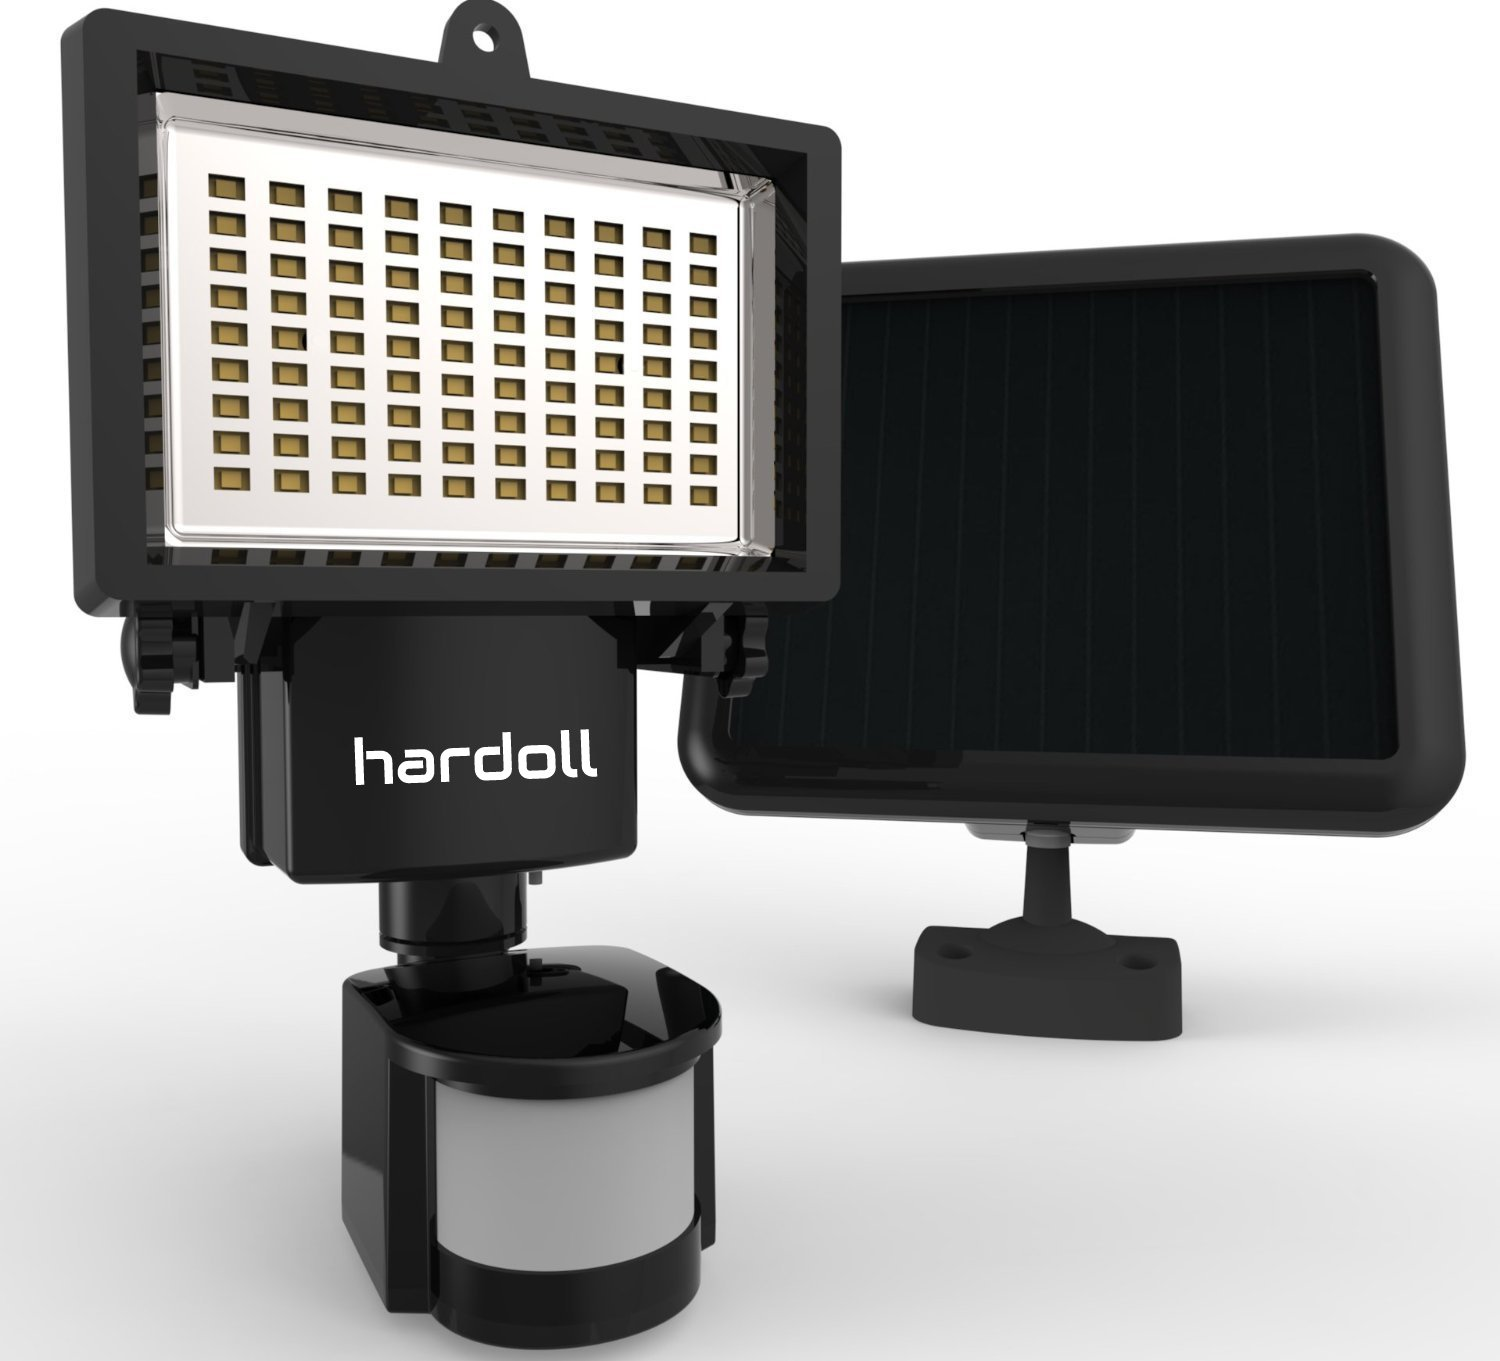 Hardoll 90 LED Solar Powered Security Lights (Black)